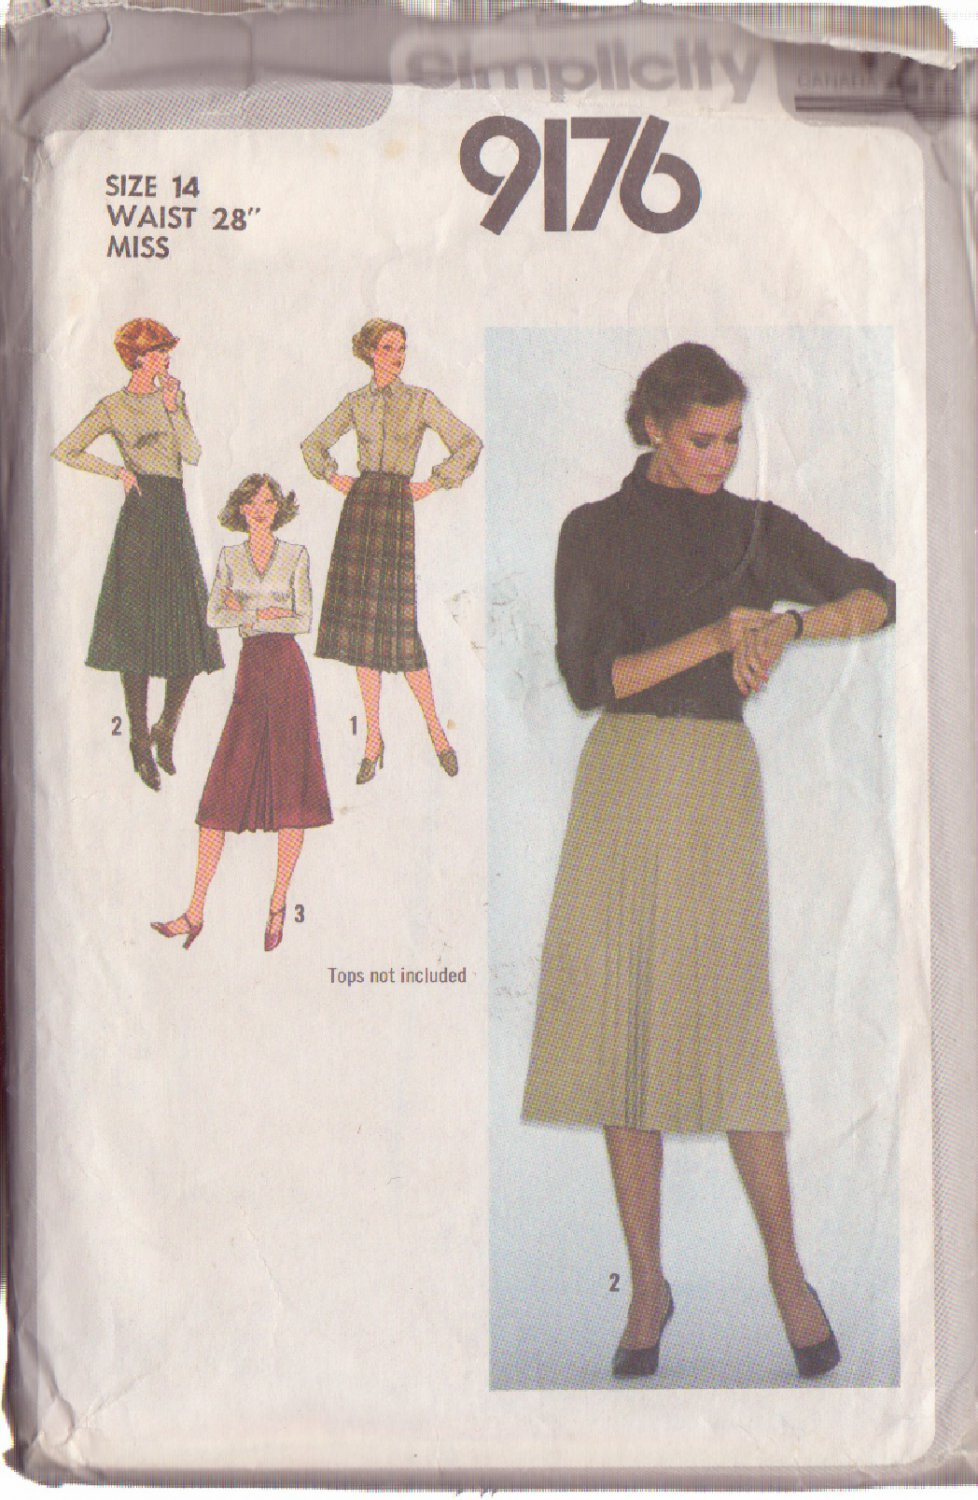 SIMPLICITY PATTERN 9176 SIZE 14  MISSES' SKIRTS IN 3 VARIATIONS